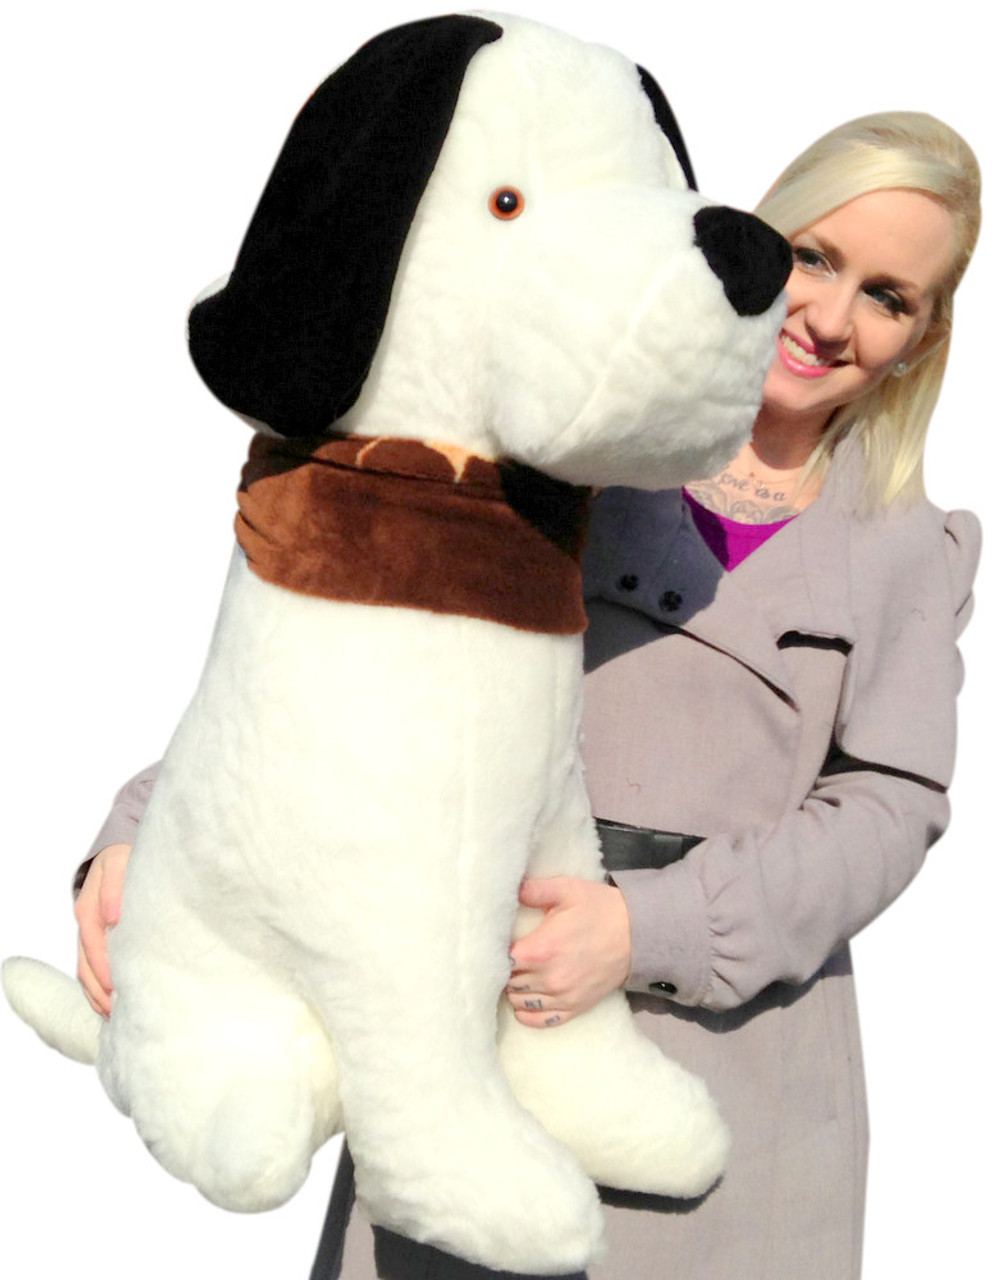 Giant Stuffed Puppy Dog 3 Feet Tall Sits On Its Own Without